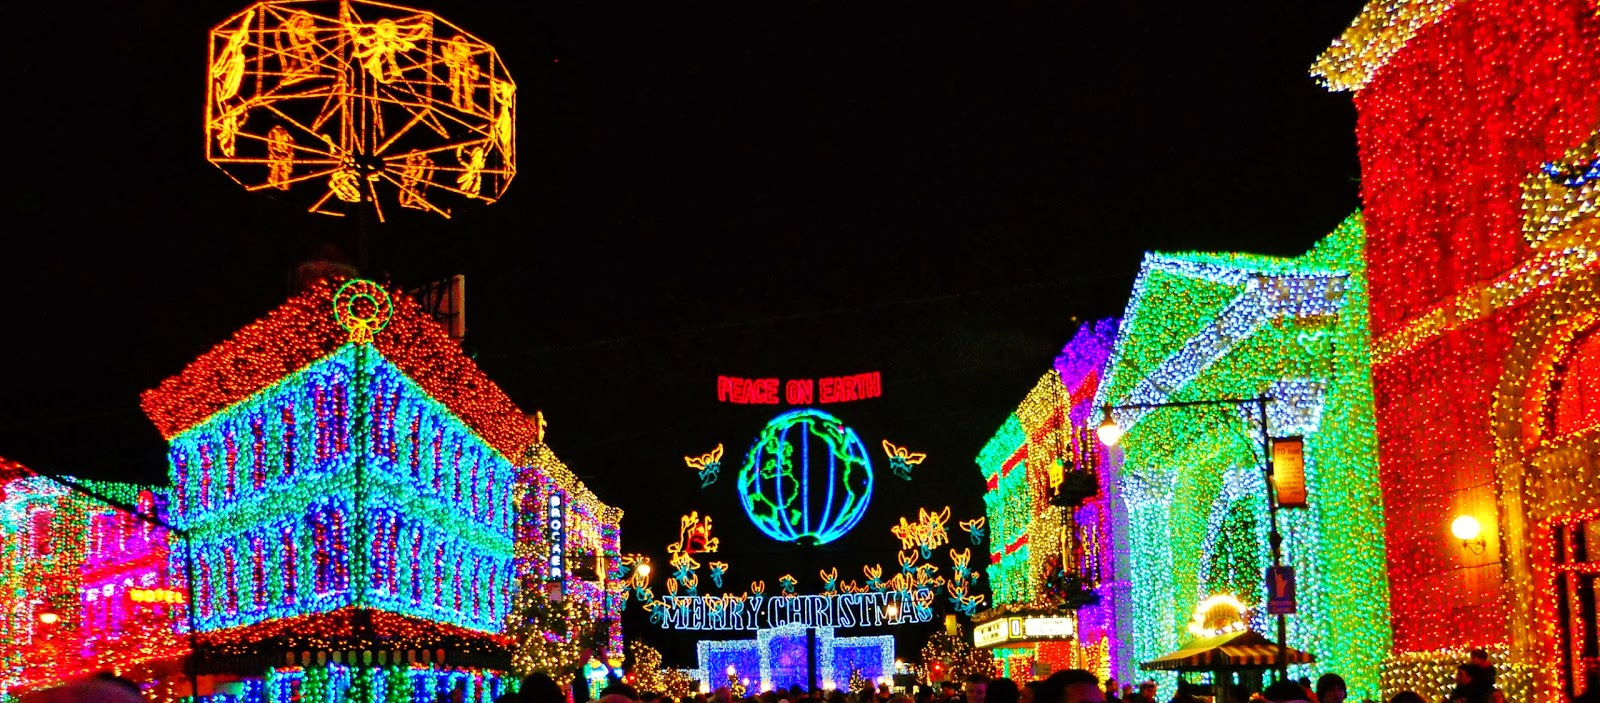 ... One Of The Most Exhilarating Spectacles Of 4 Million+ Christmas Lights  Appears On Residential Street In Disneyu0027s Hollywood Studios The Osborne  Family ...